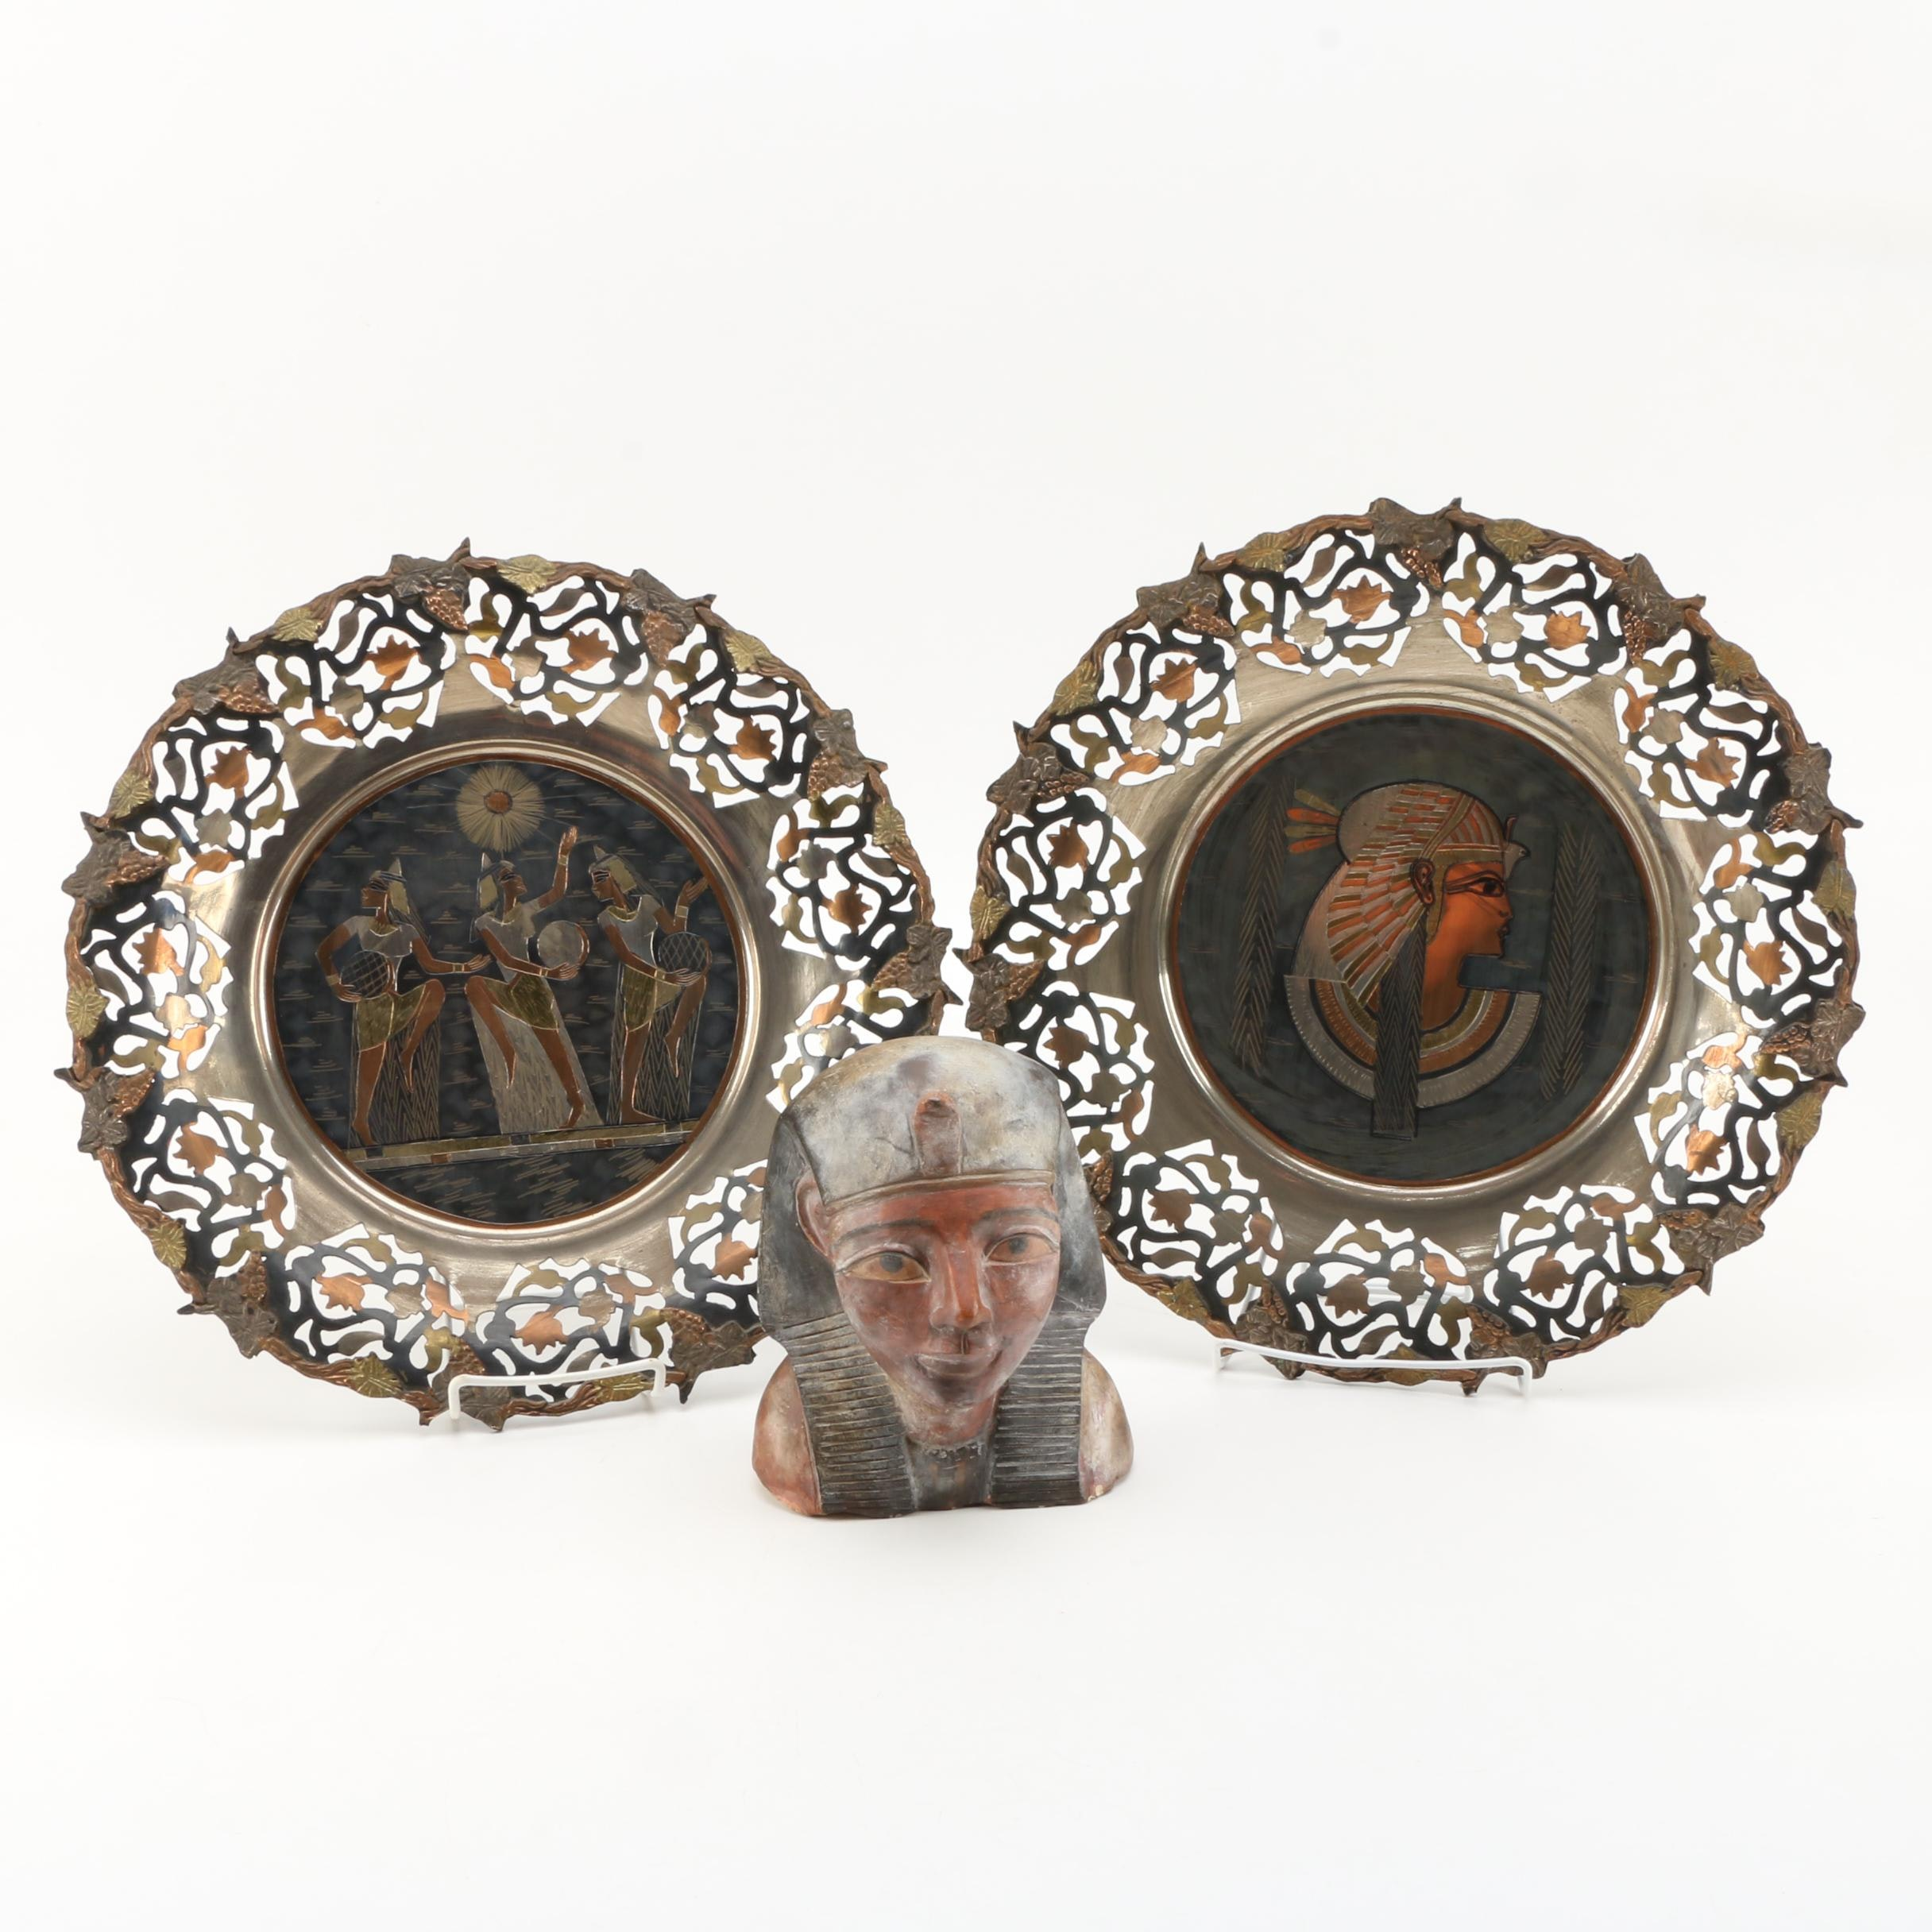 Egyptian-Themed Decorative Plates and Bust